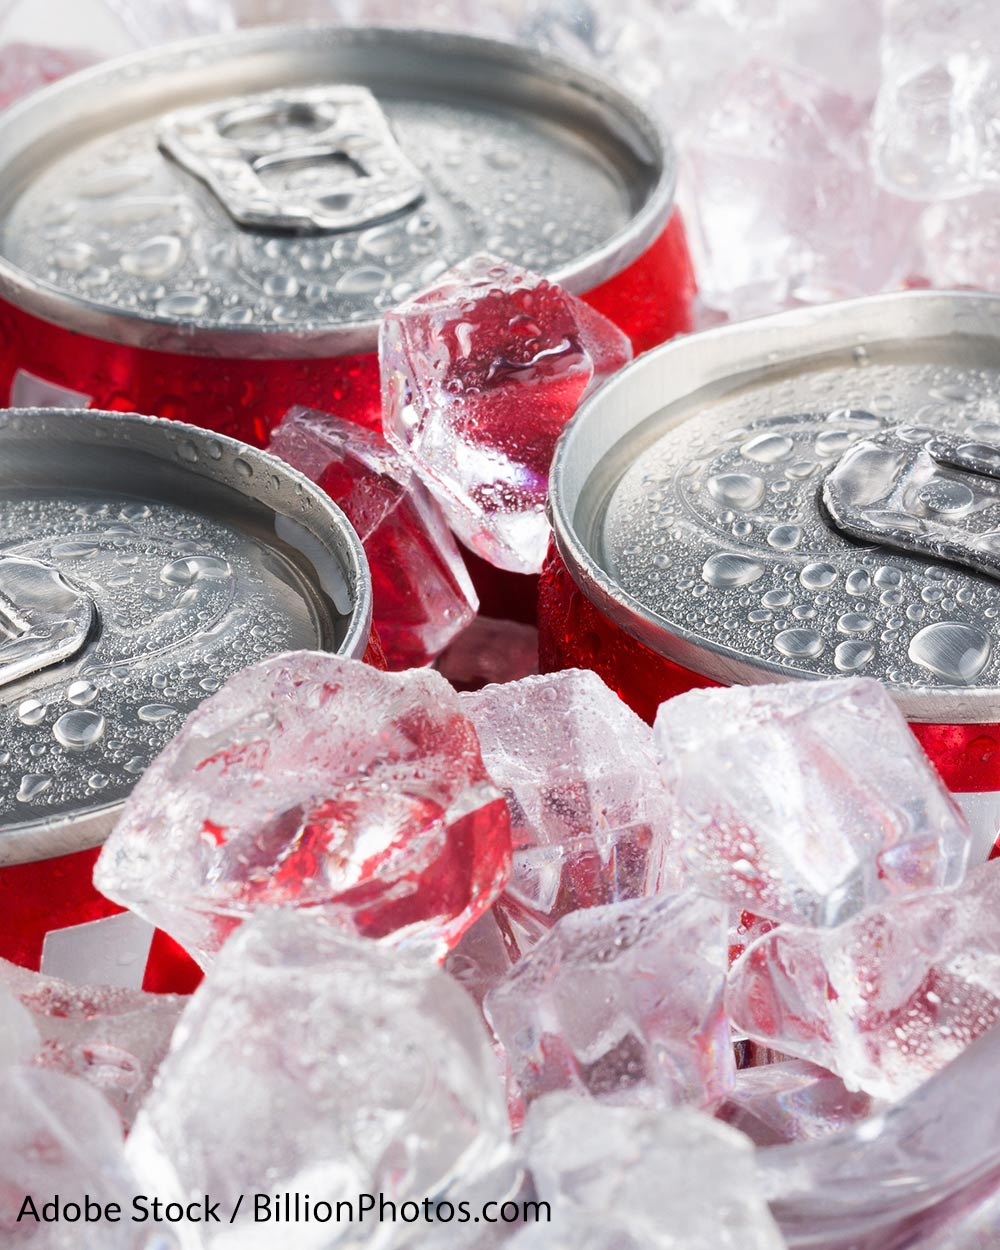 BPA is still used in the linings of some soda cans.